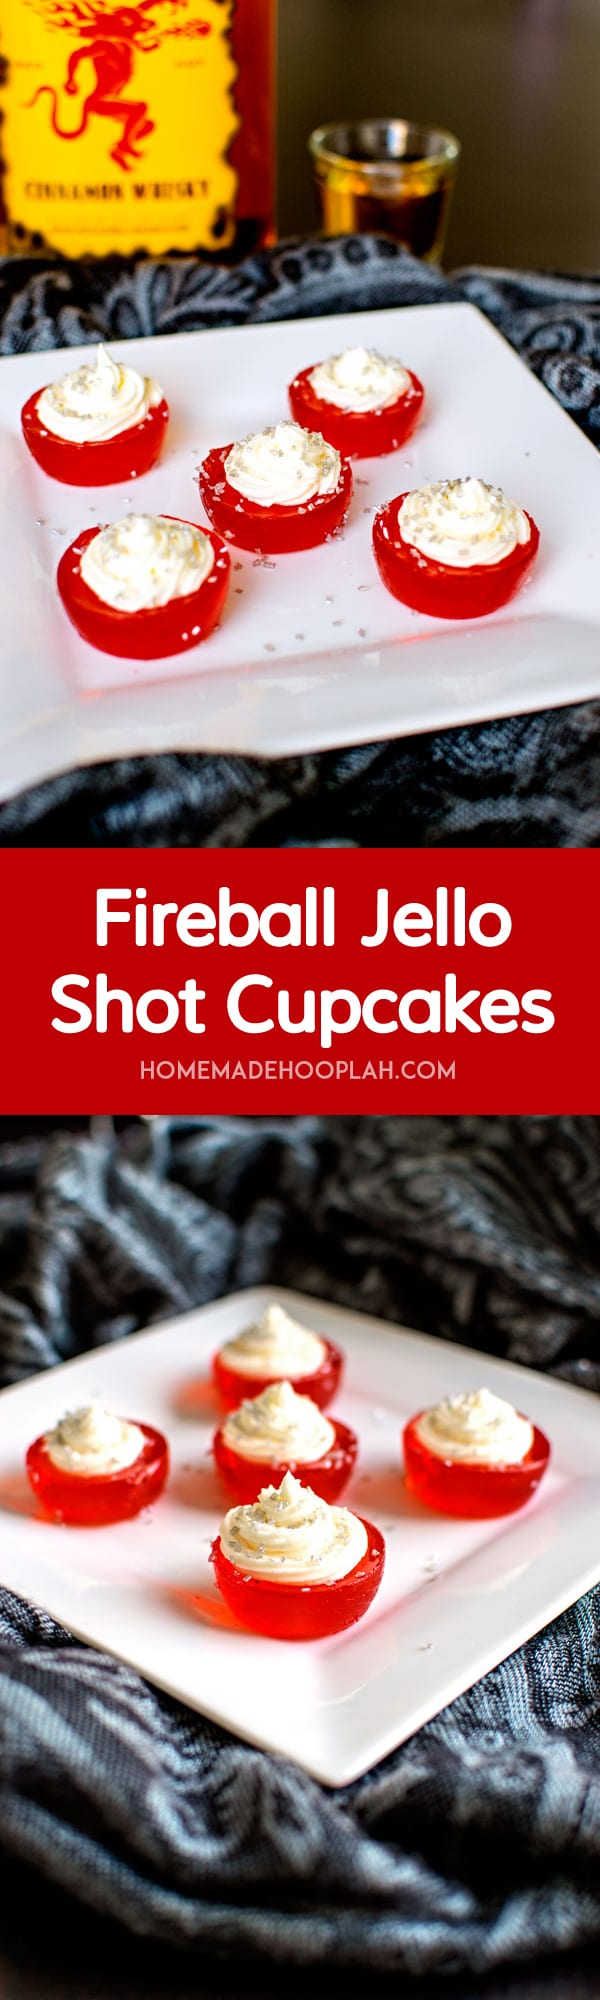 Fireball Jello Shot Cupcakes! Fireball jello shots infused with spicy taste of Fireball Whisky and topped with Fireball buttercream frosting. Another way to warm up your holiday! | HomemadeHooplah.com